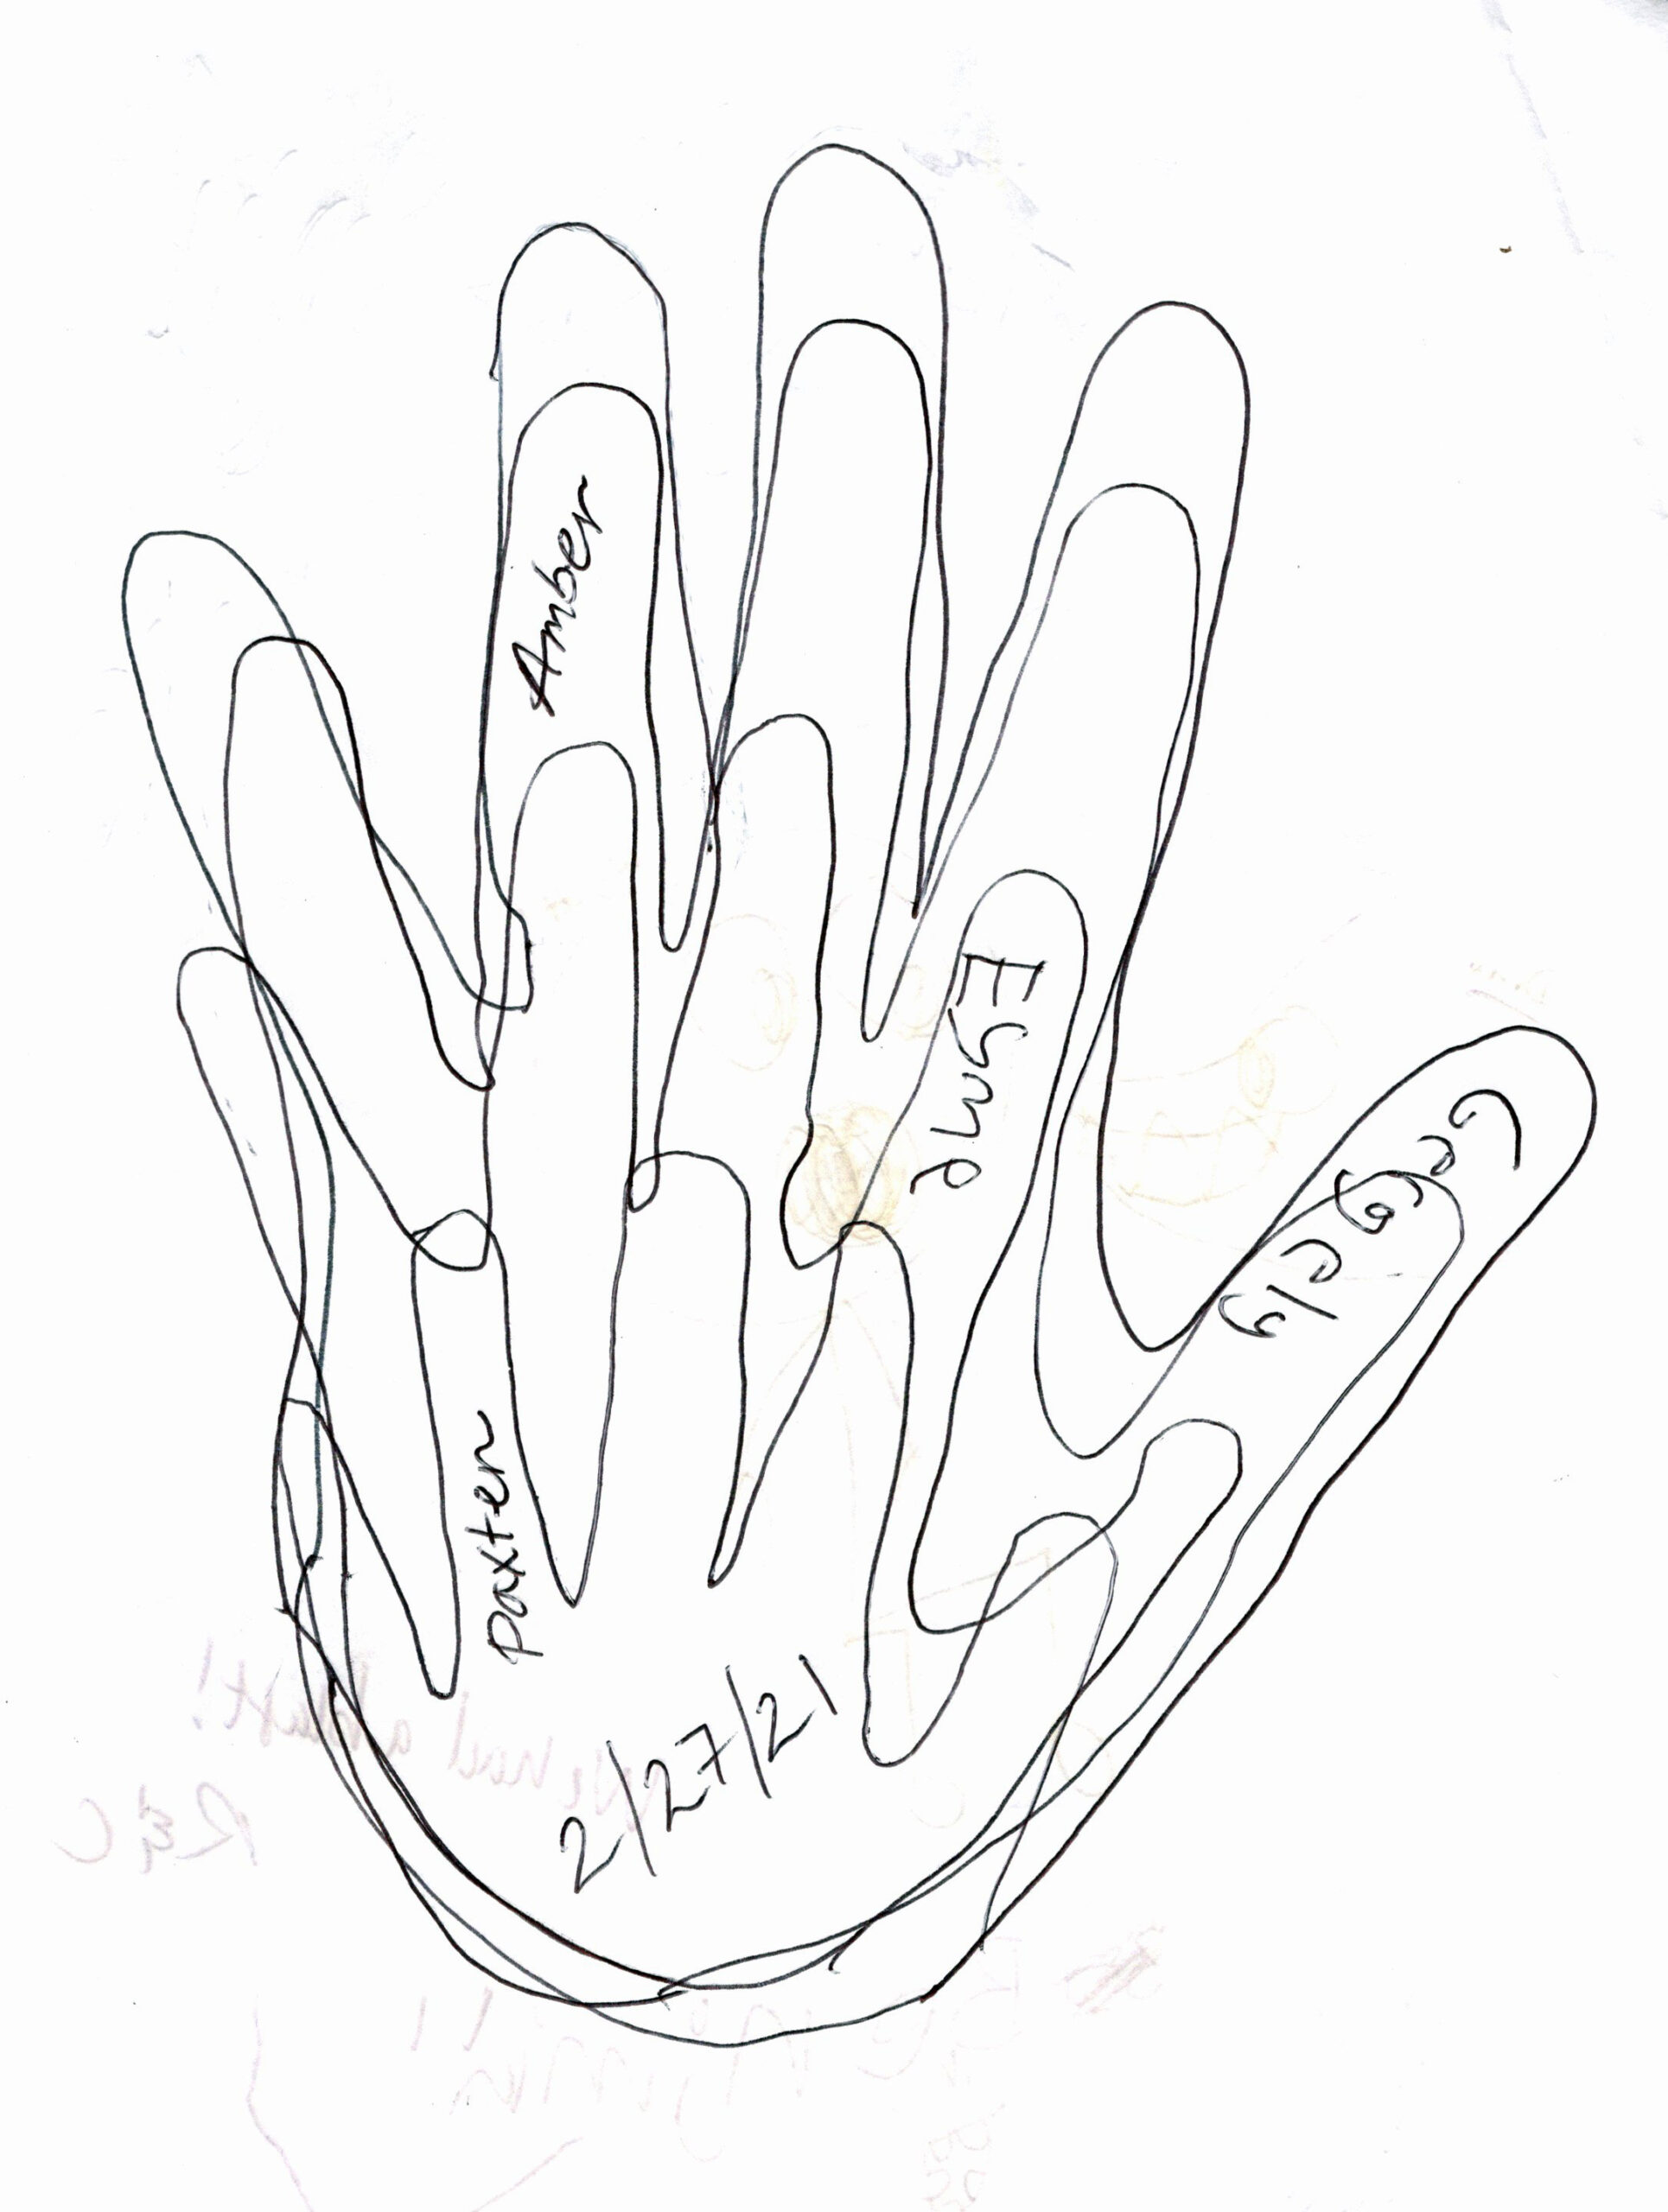 All sizes of hands